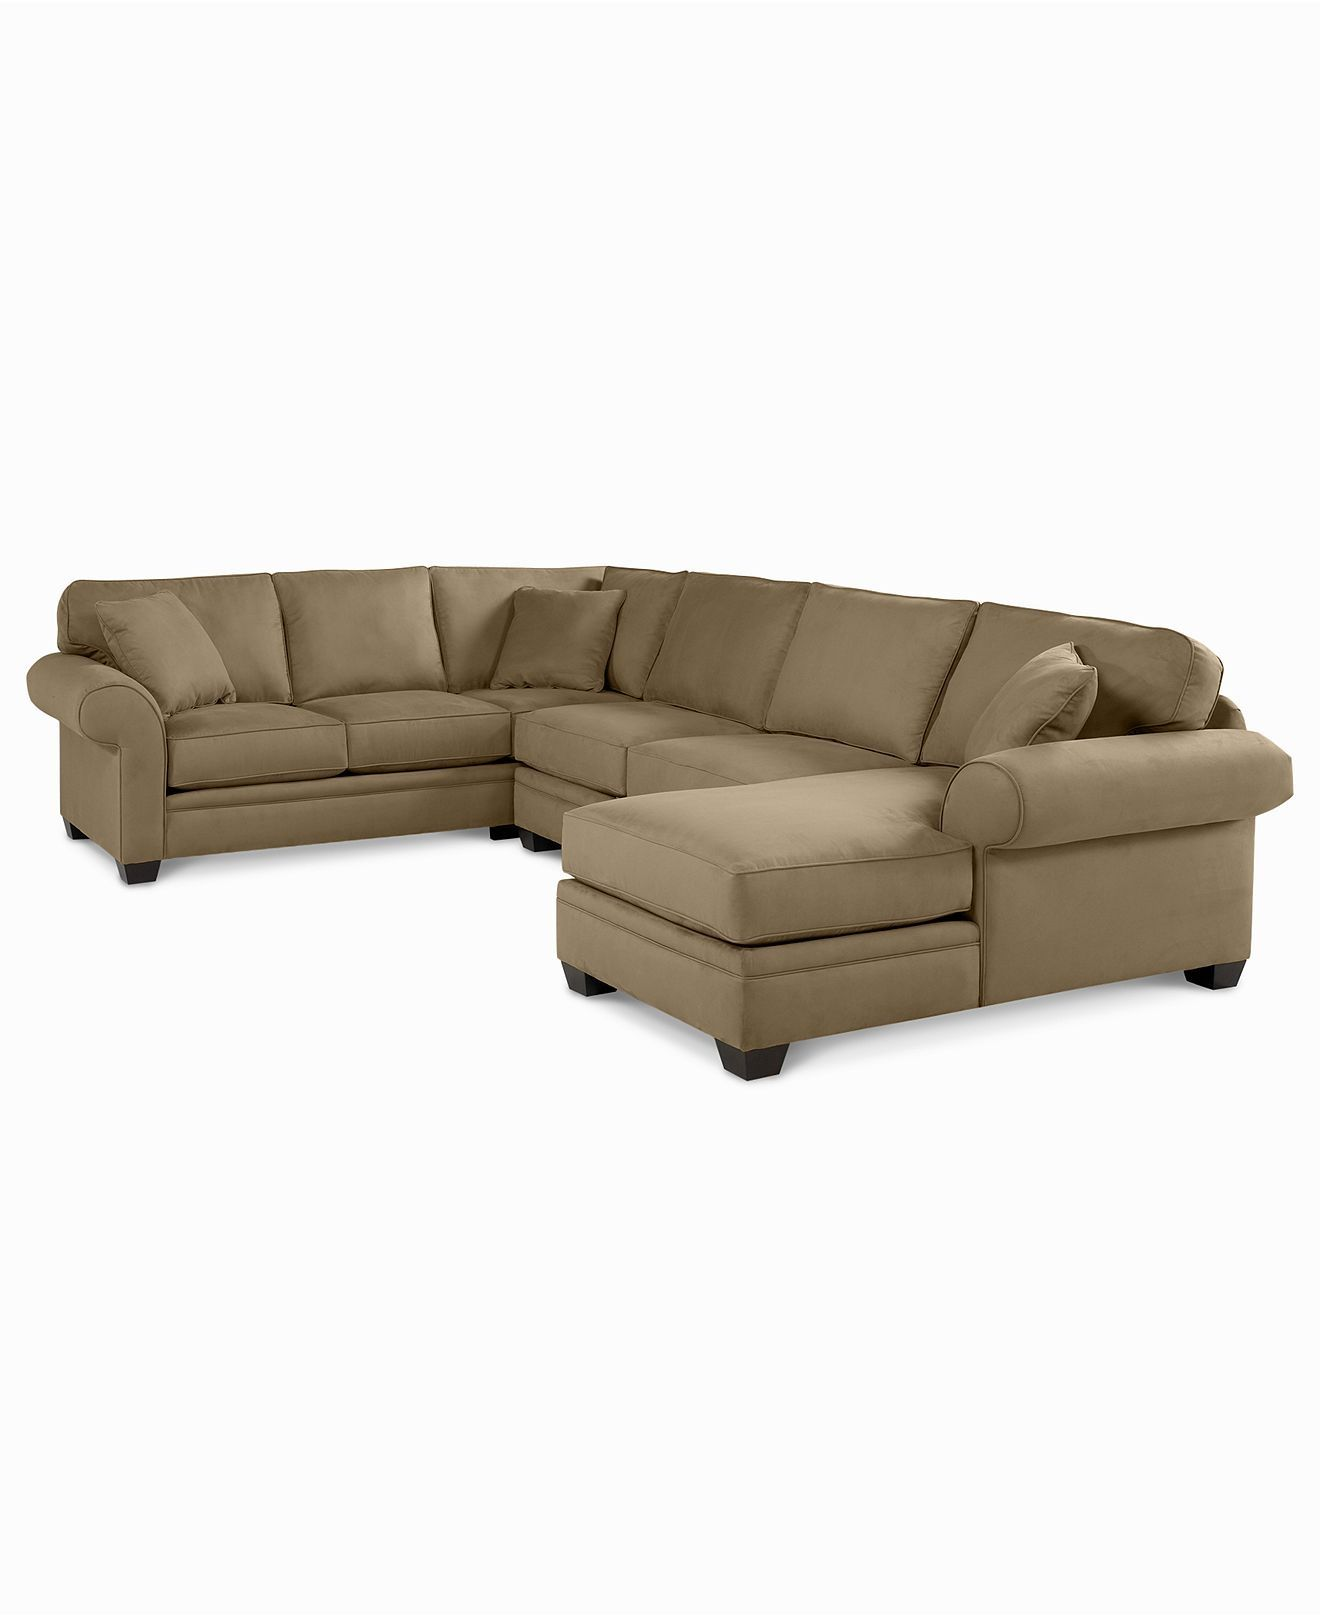 Raja Laf Sofa Sectional